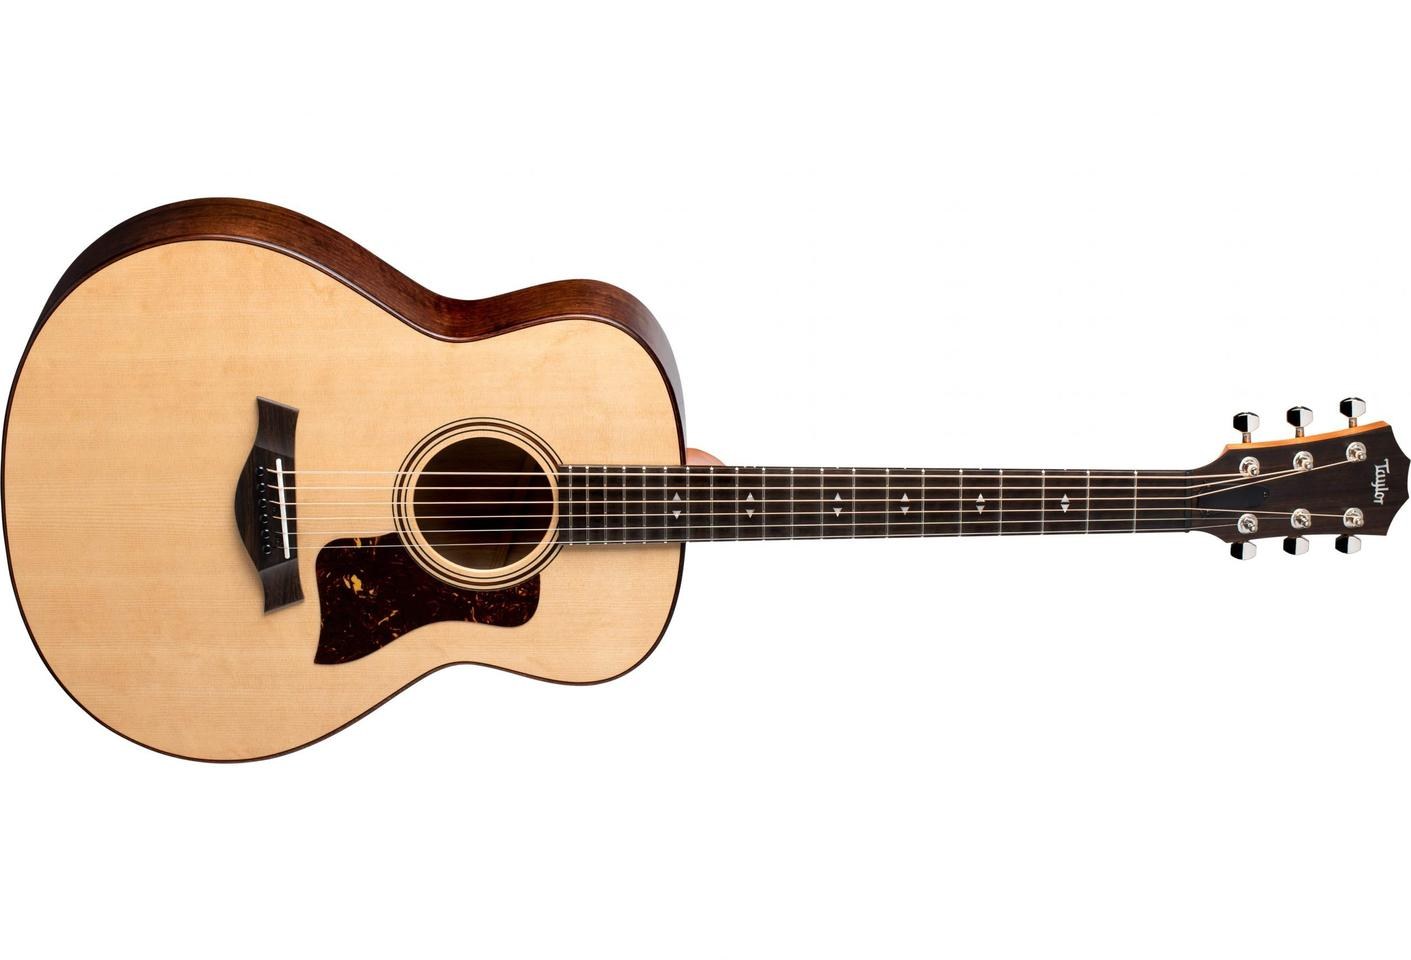 The GT features a new C-Class bracing architecture for a warm bass, rich midrange and crisp highs